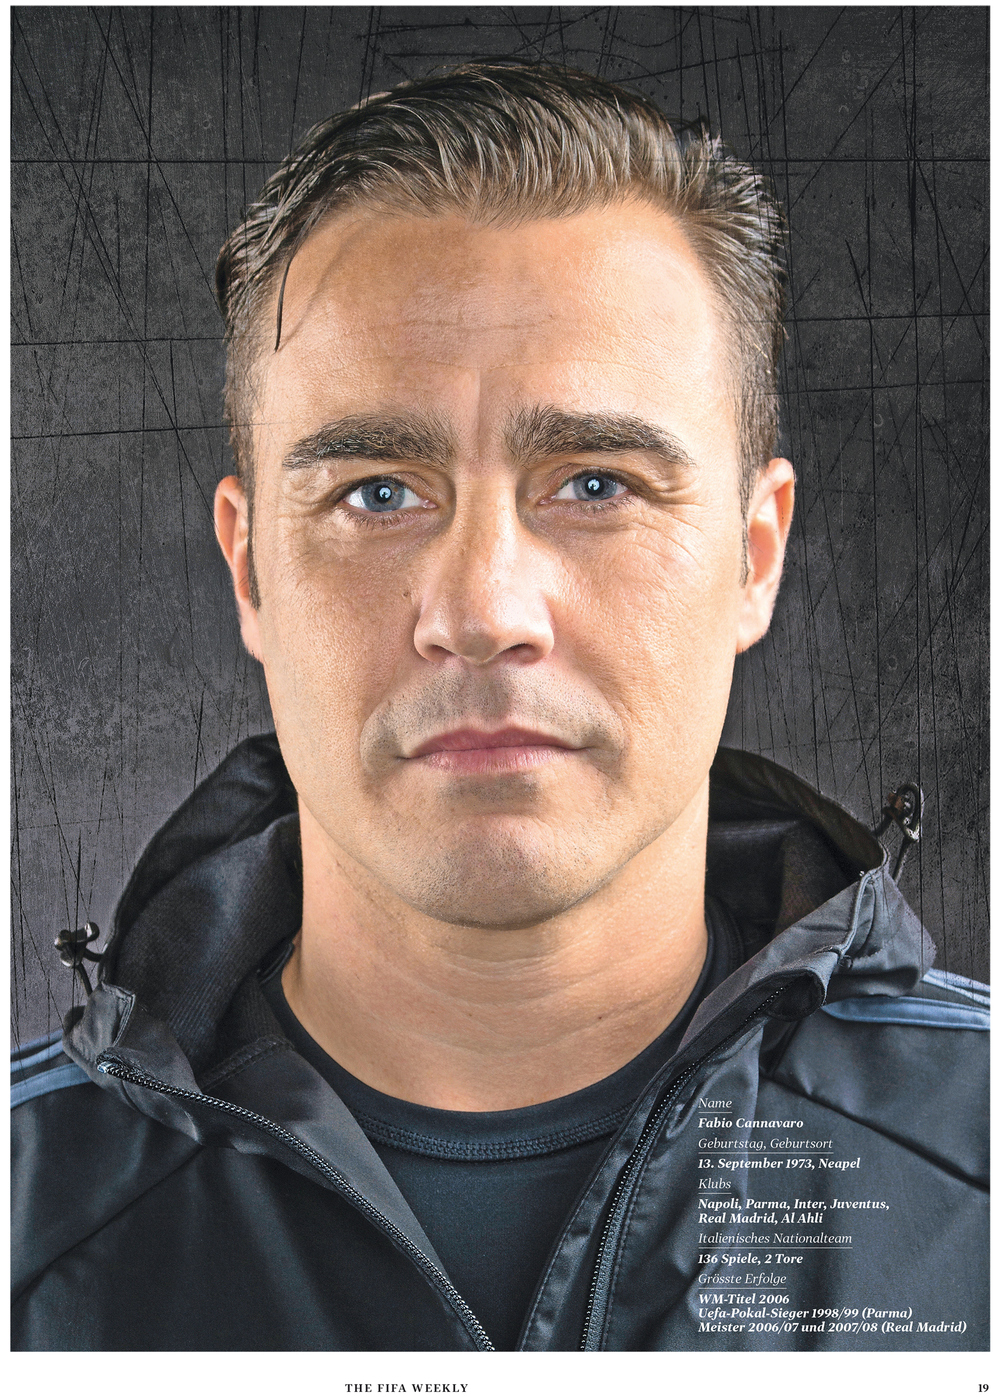 fabio cannavaro for fifa weekly